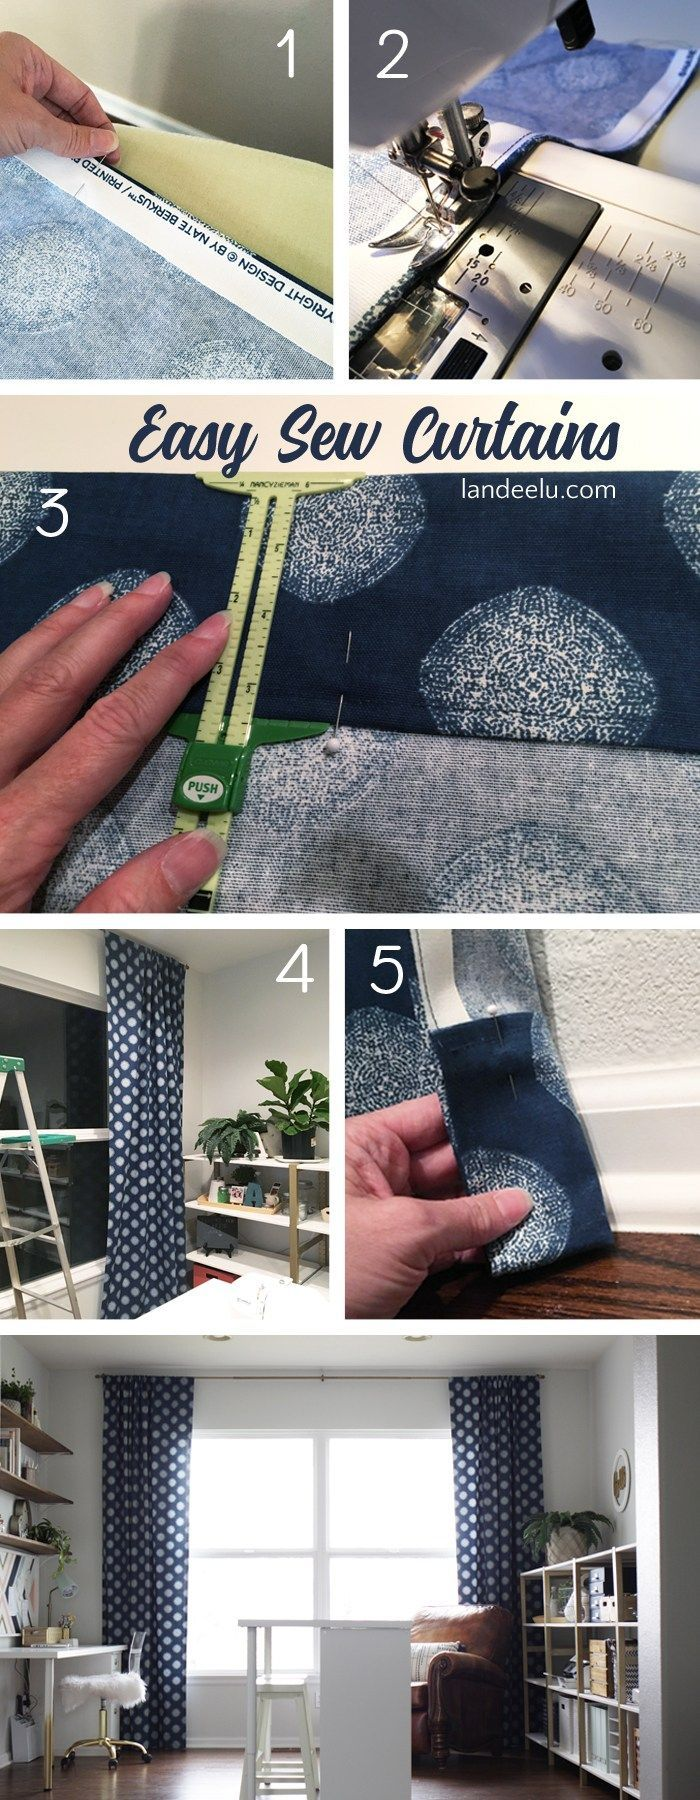 Easy Sew Curtains: If I Can Sew These, You Can Too! - landeelu.com